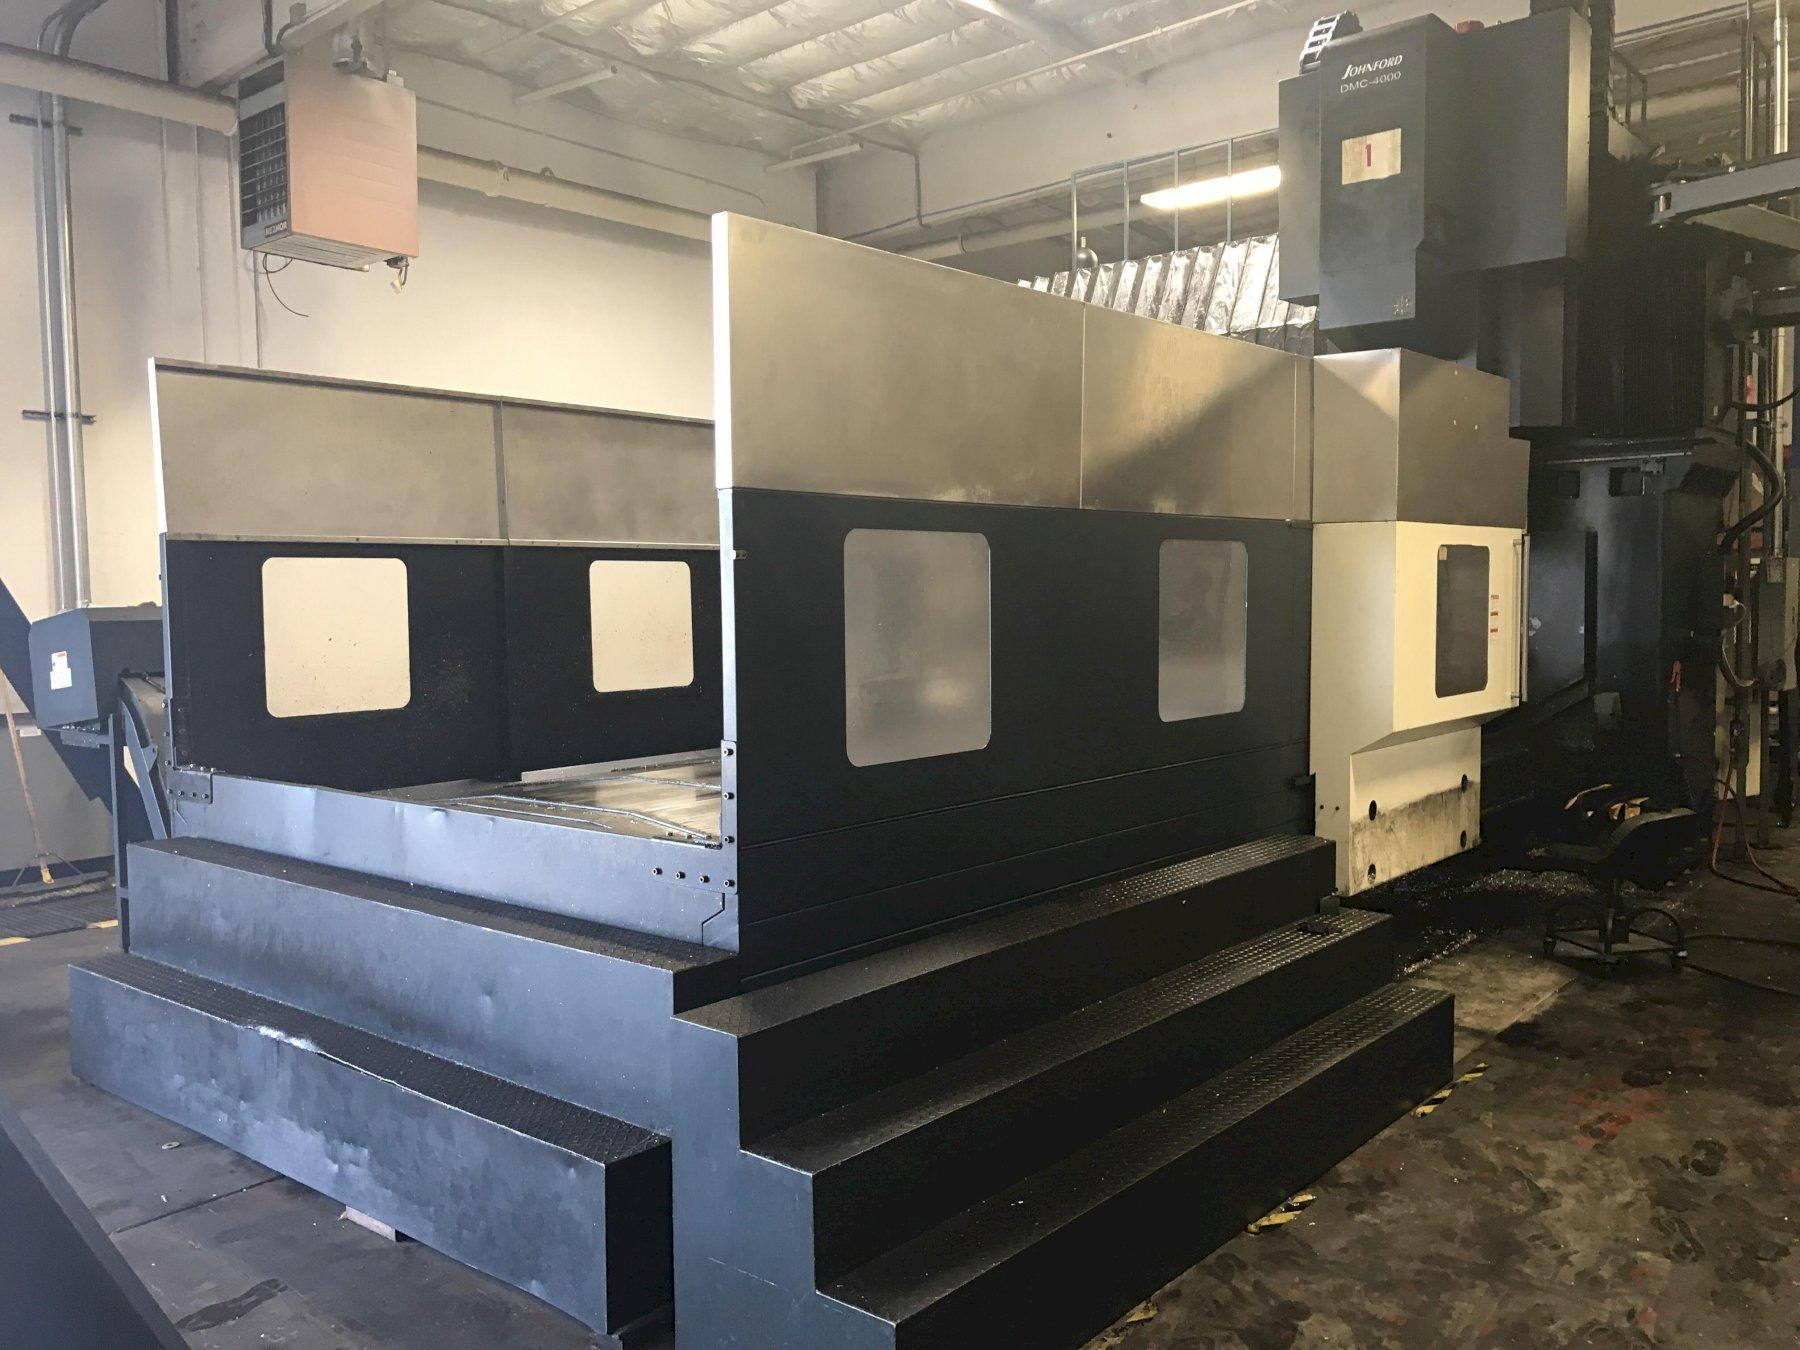 Johnford DMC4000/2800 CNC Bridge Style Vertical Machining Center, Fanuc 18i Control, 158